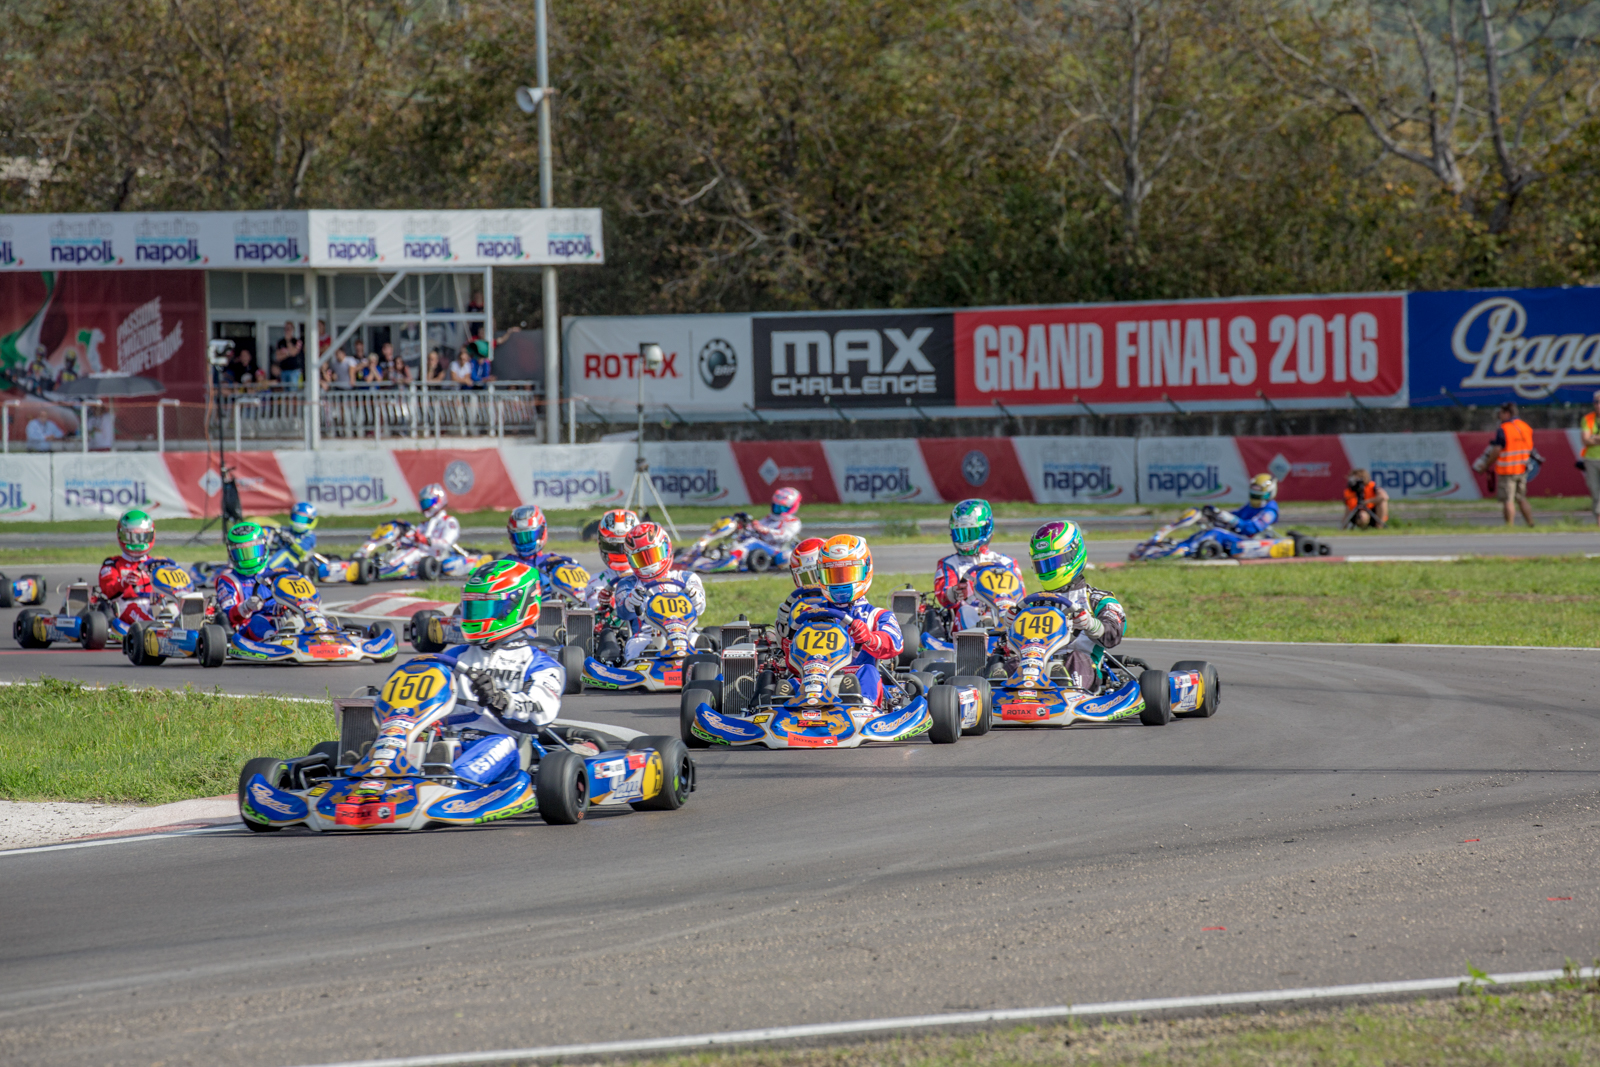 PHOTO REPORT: Rotax Grand Finals Sarno 2016